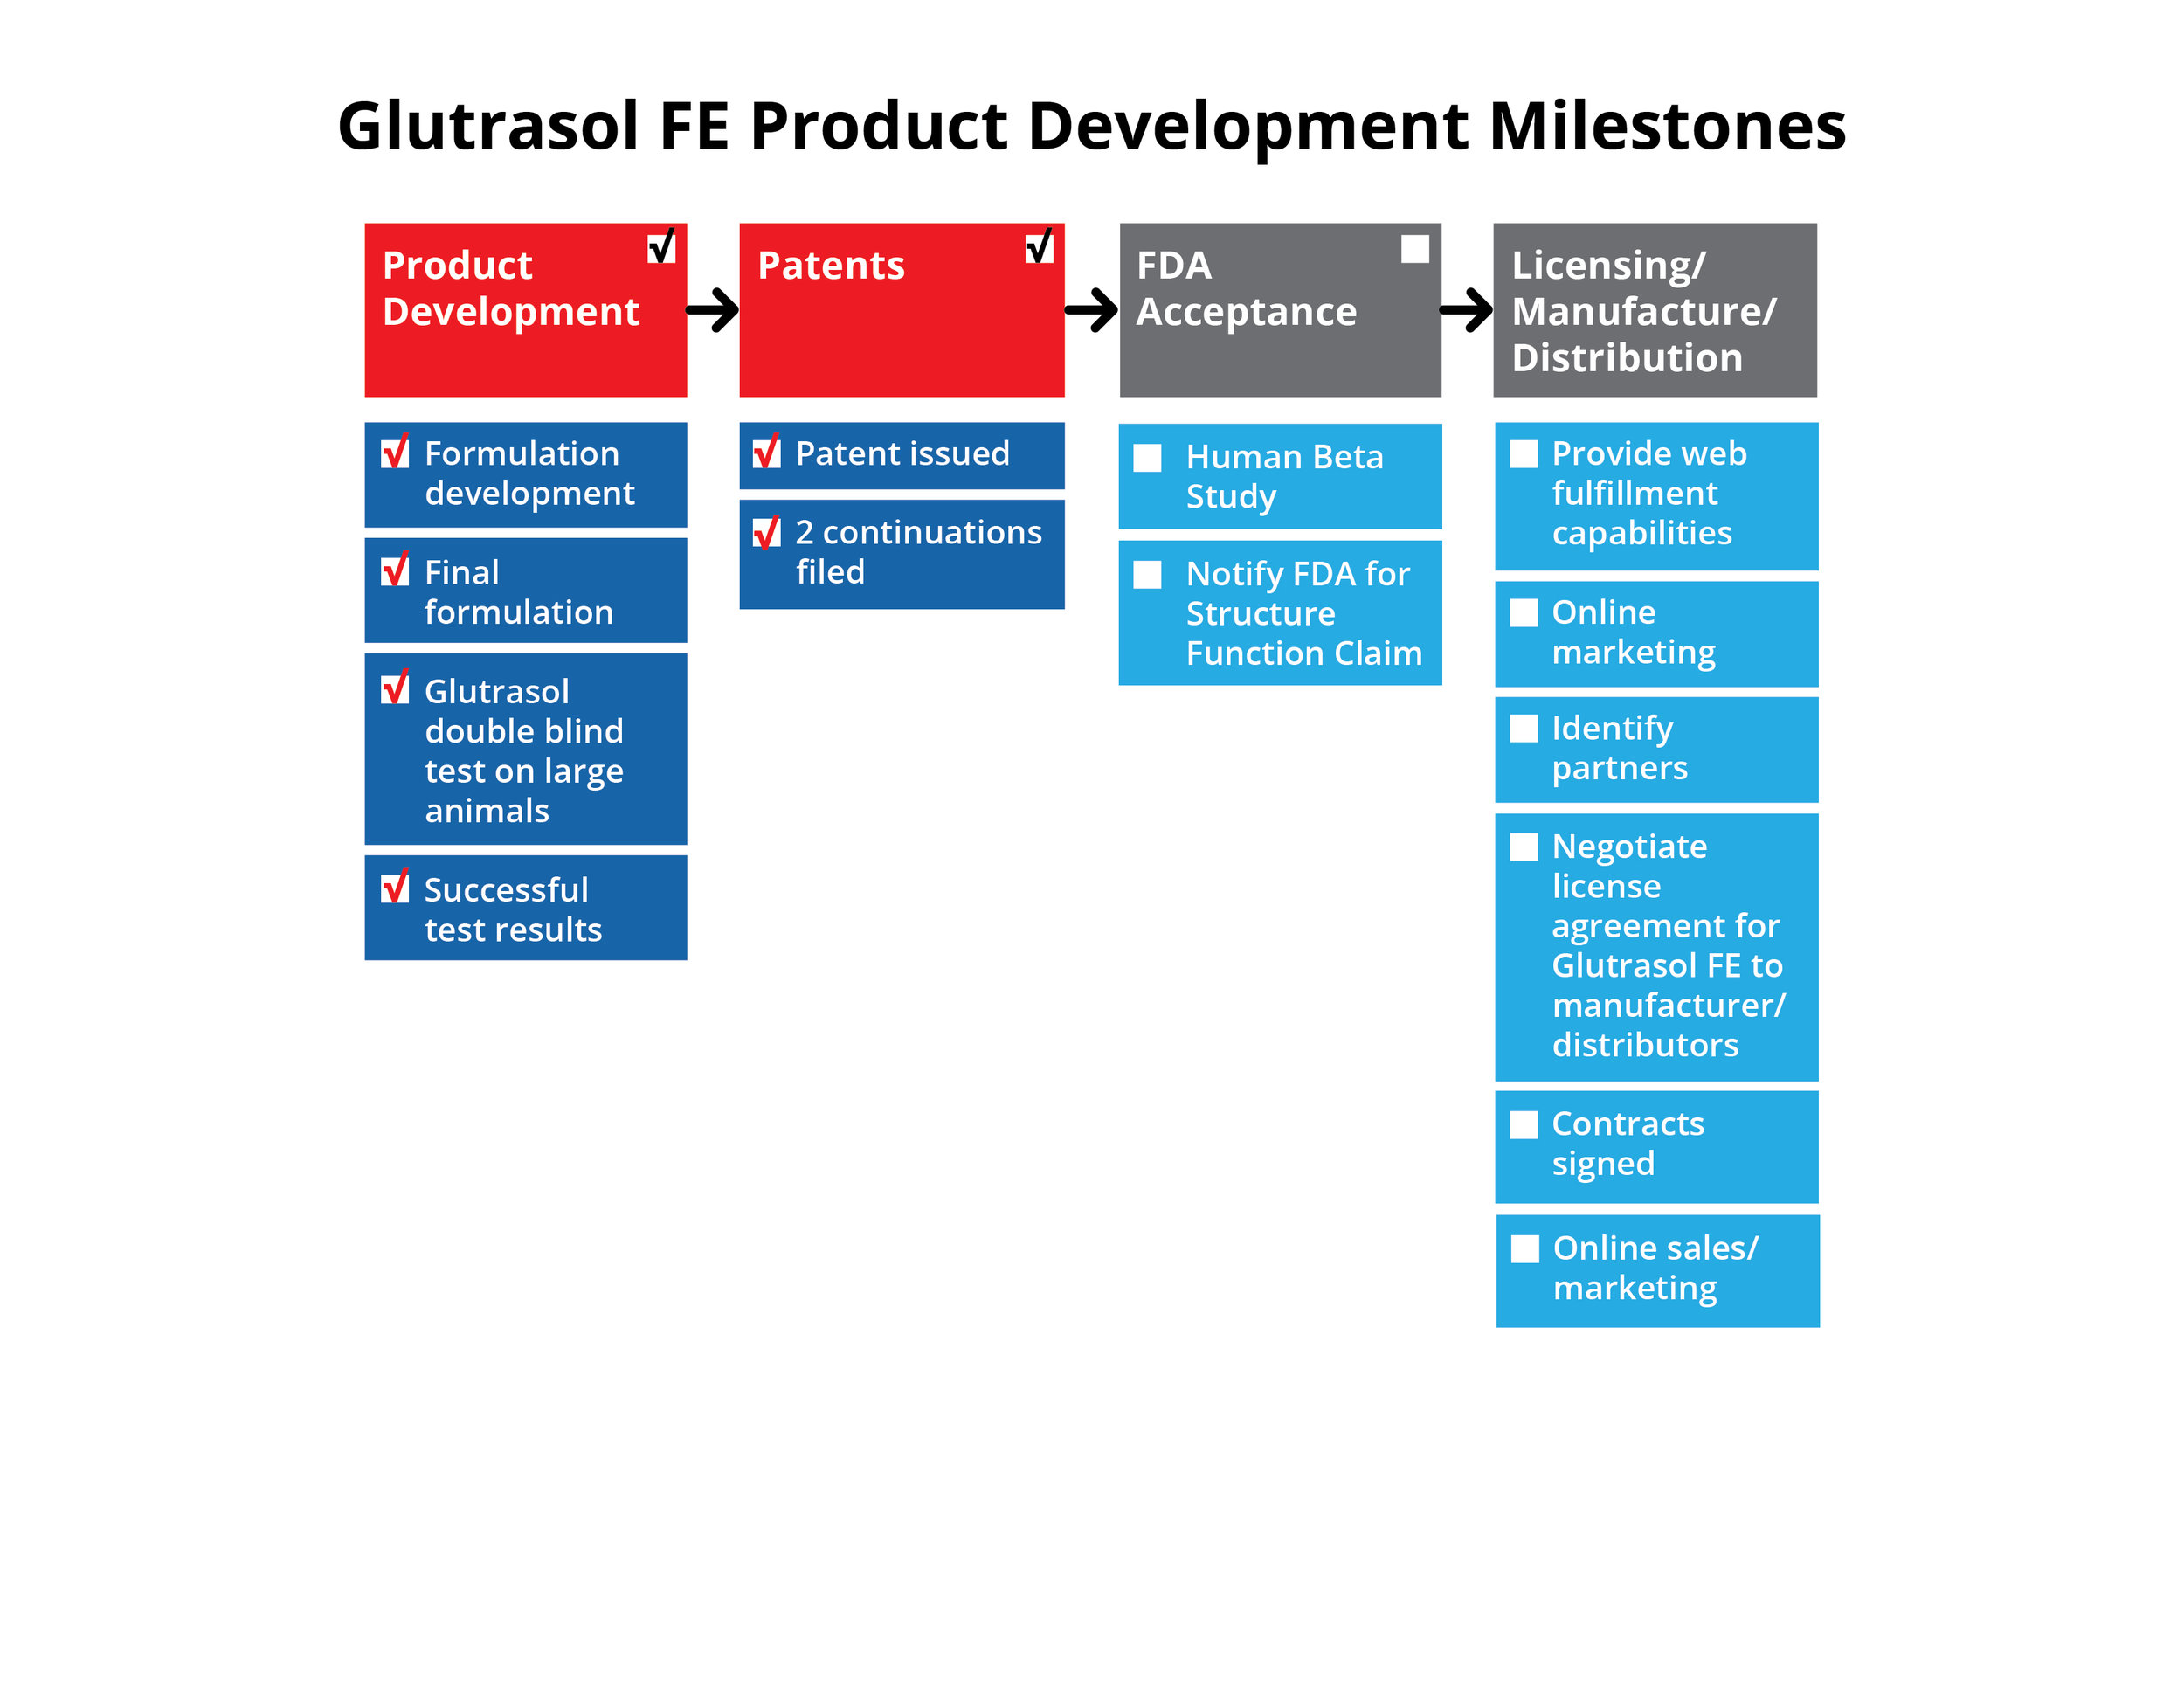 This graphic shows the Product Development Milestones achieved for the Glutrasol FE (Fertility) product.